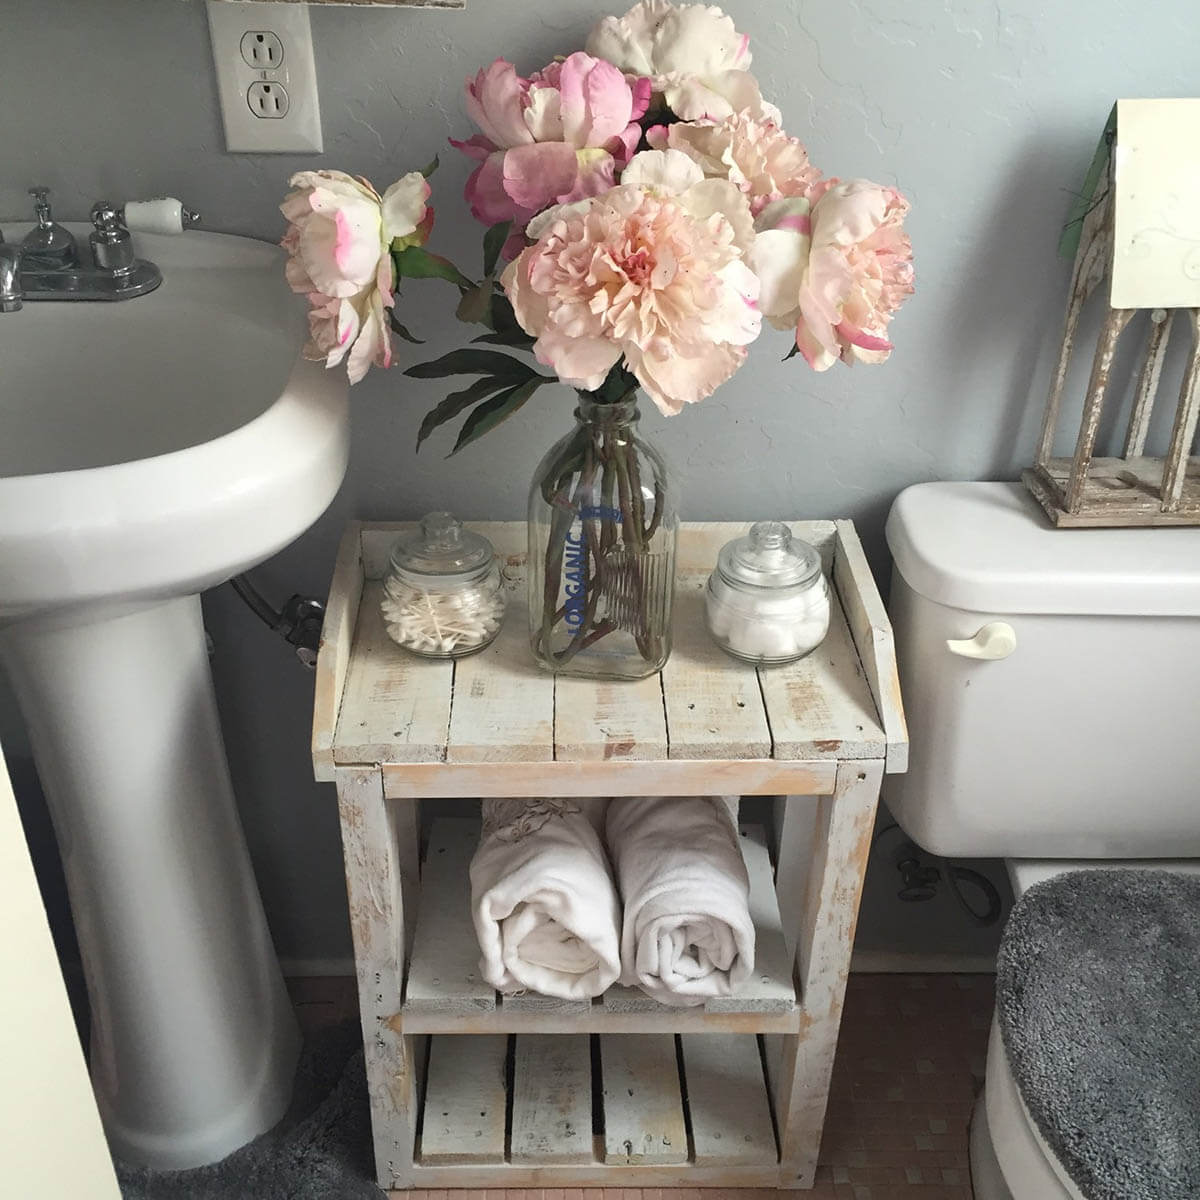 15 Lovely Shabby Chic Bathroom Decor Ideas Chuckiesblog